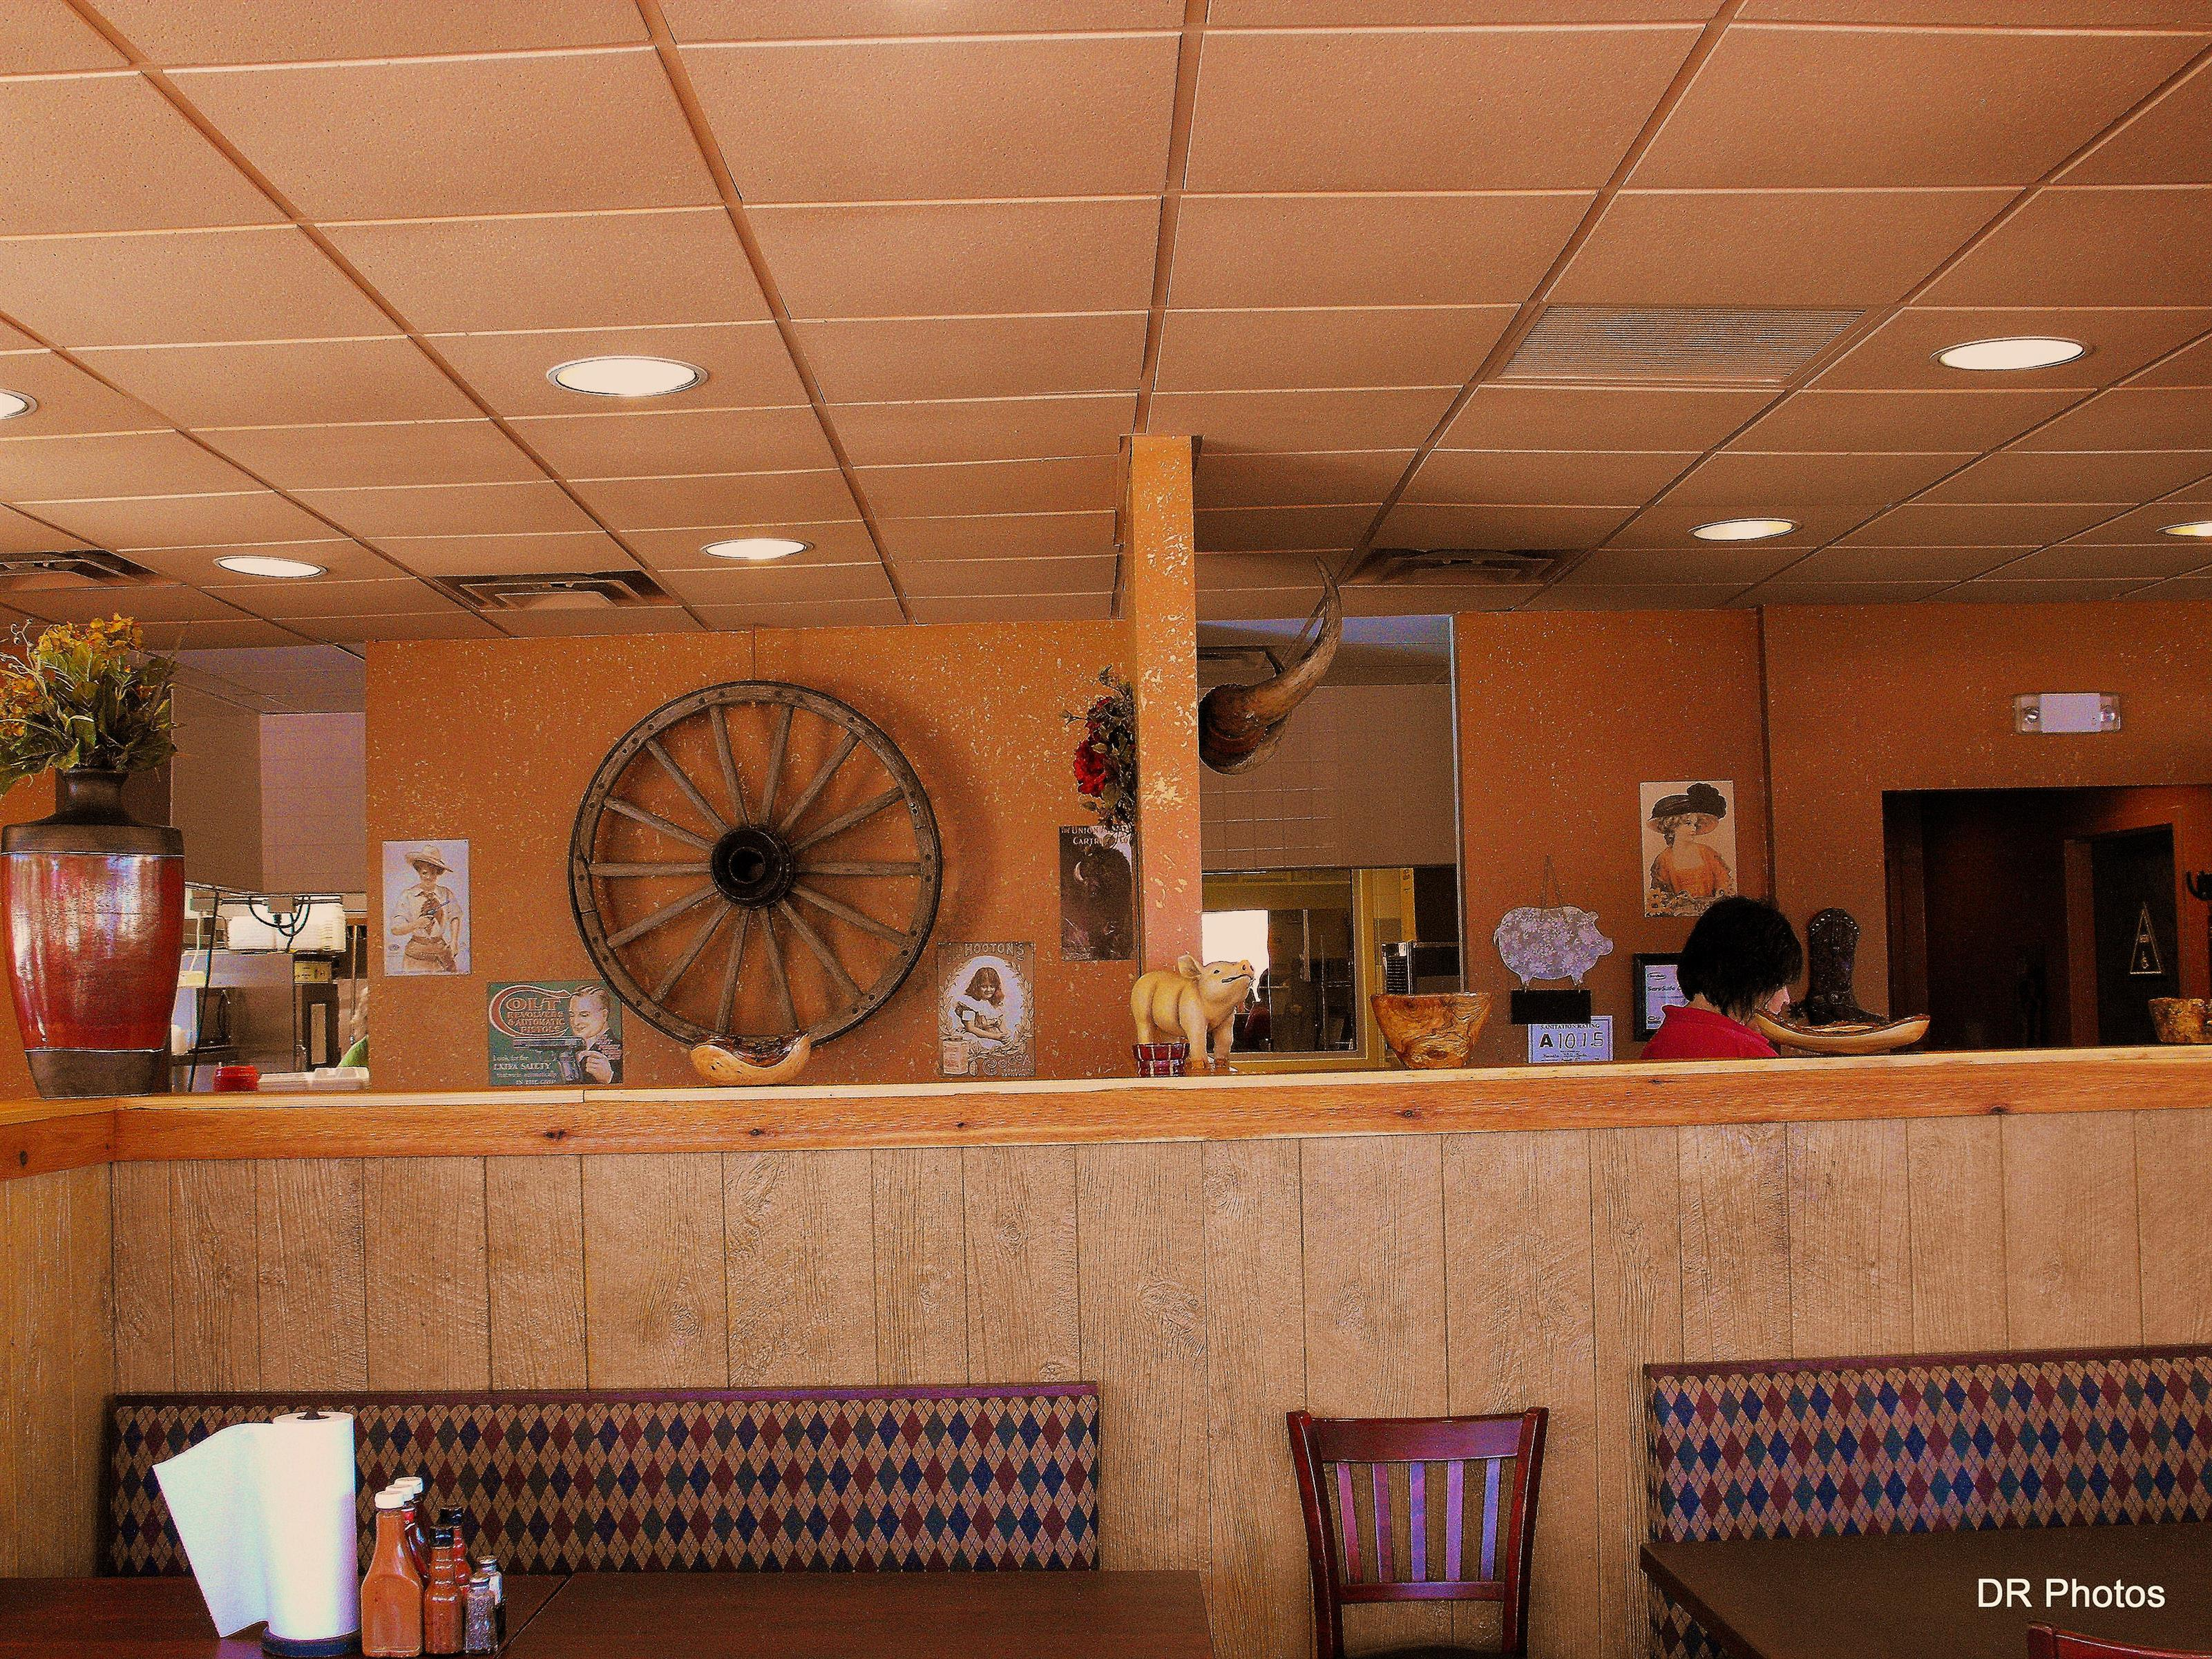 interior of hannah's bbq showcasing all rustic decorations on the walls